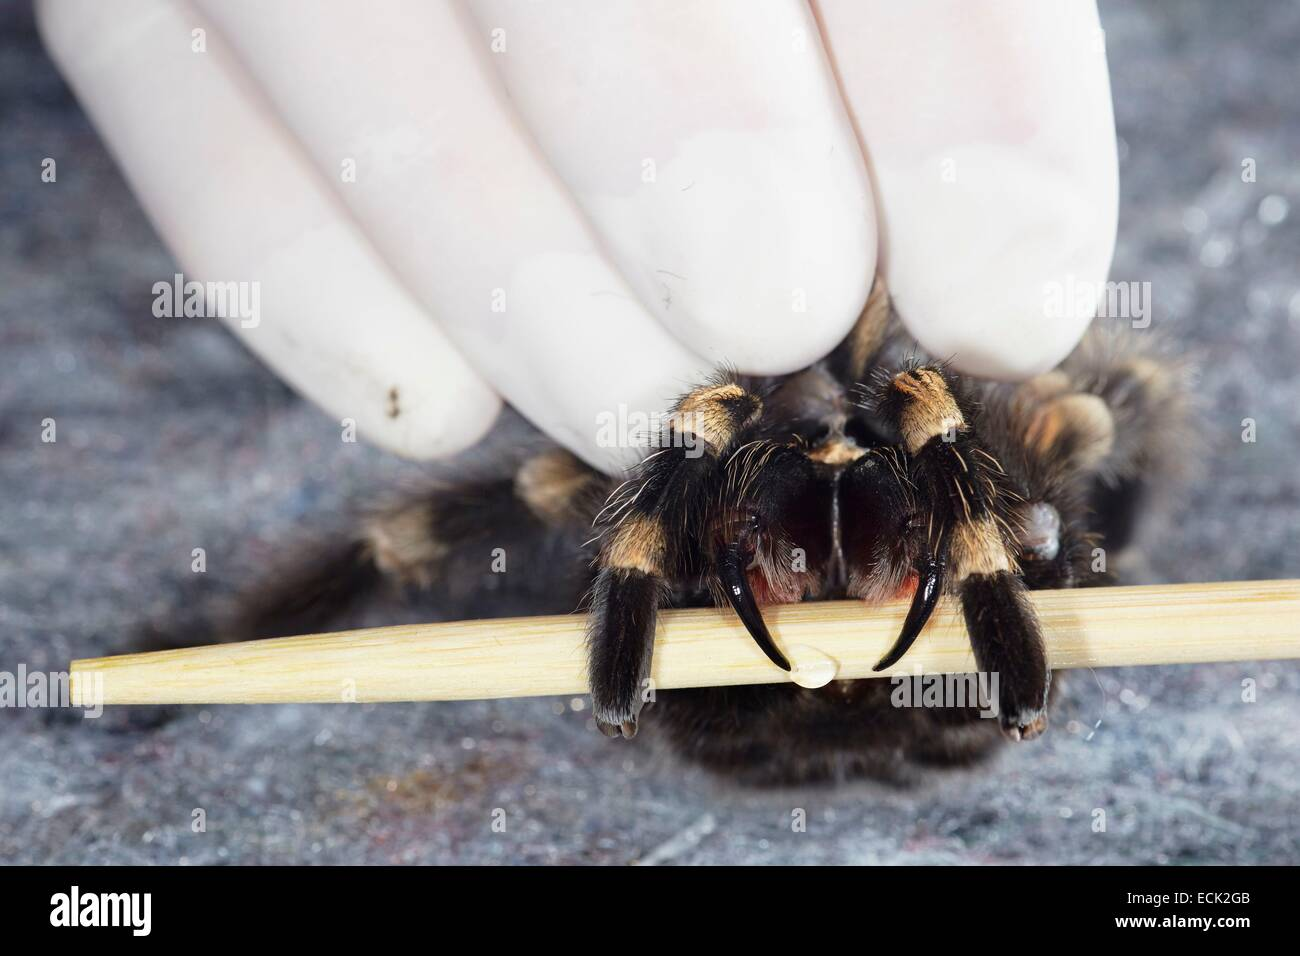 France, Paris, National Museum of Natural History, Mygalomorphae, Theraphosidae, Levy venom on a Mexican redknee - Stock Image